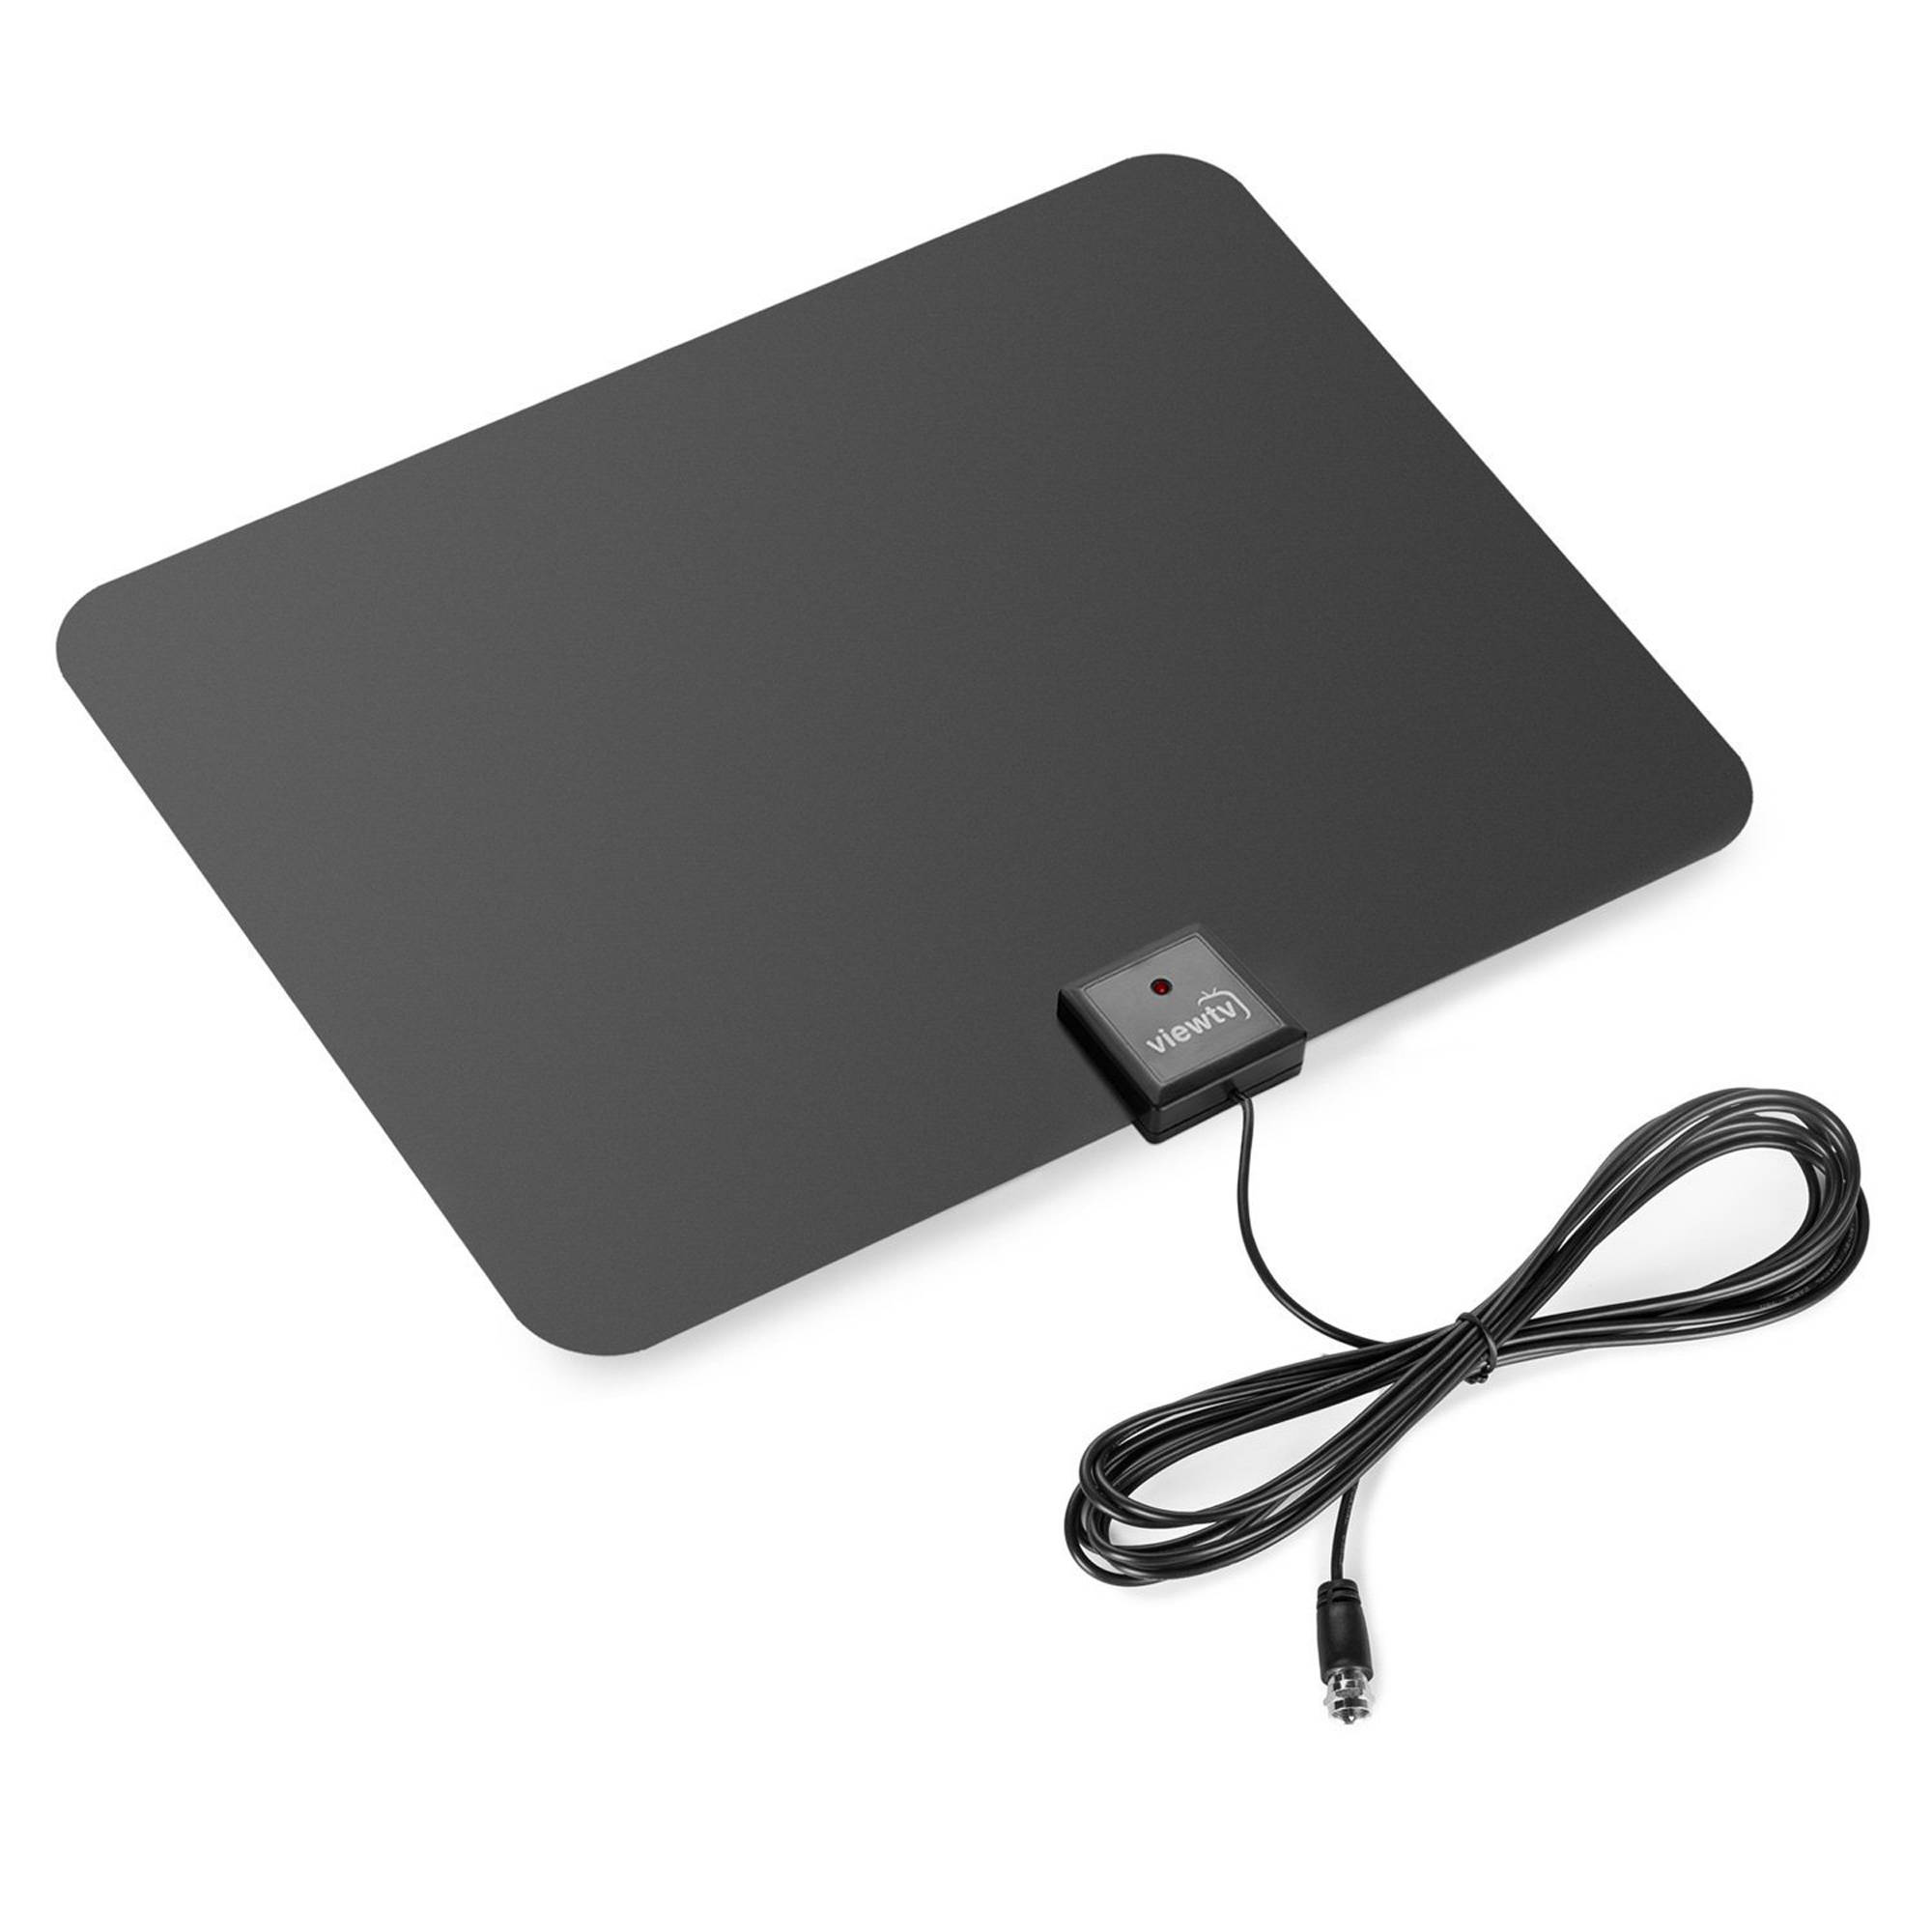 viewtv viewtv60miant indoor amplified hdtv antenna. Black Bedroom Furniture Sets. Home Design Ideas